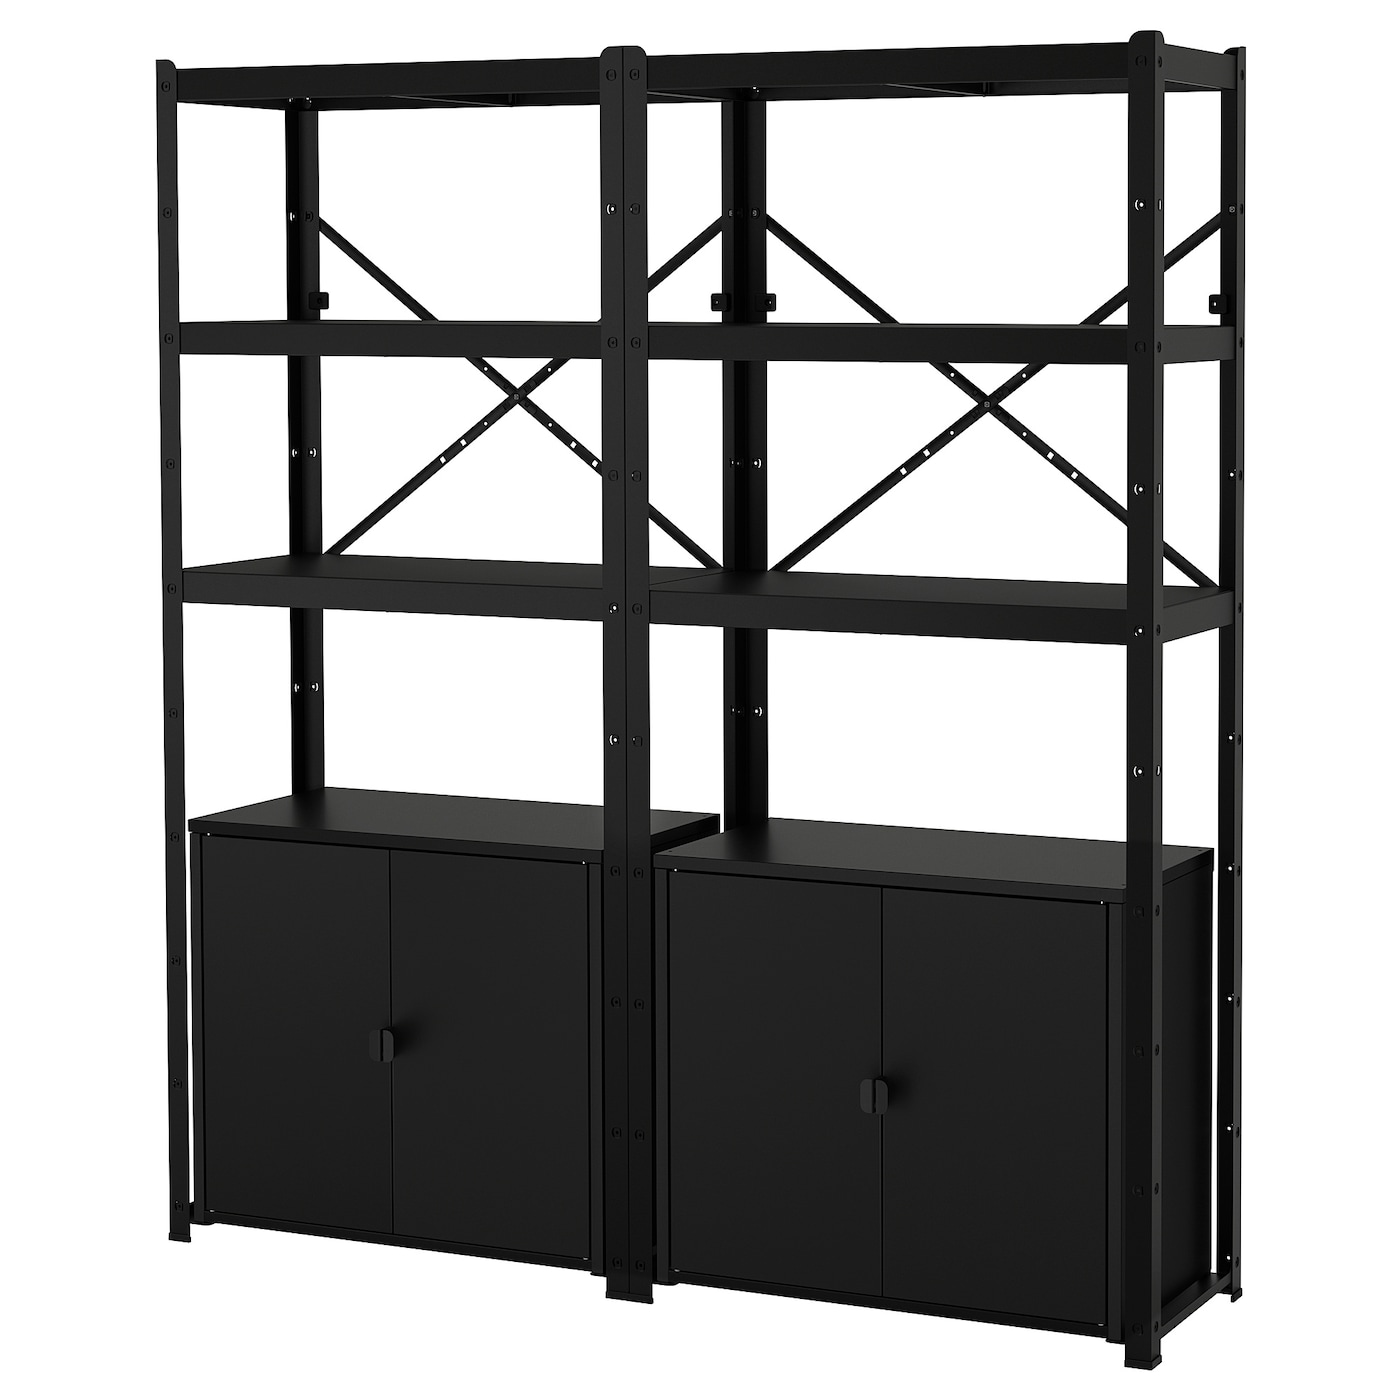 IKEA BROR shelving unit with cabinets Perfect for big heavy items like tools and books.